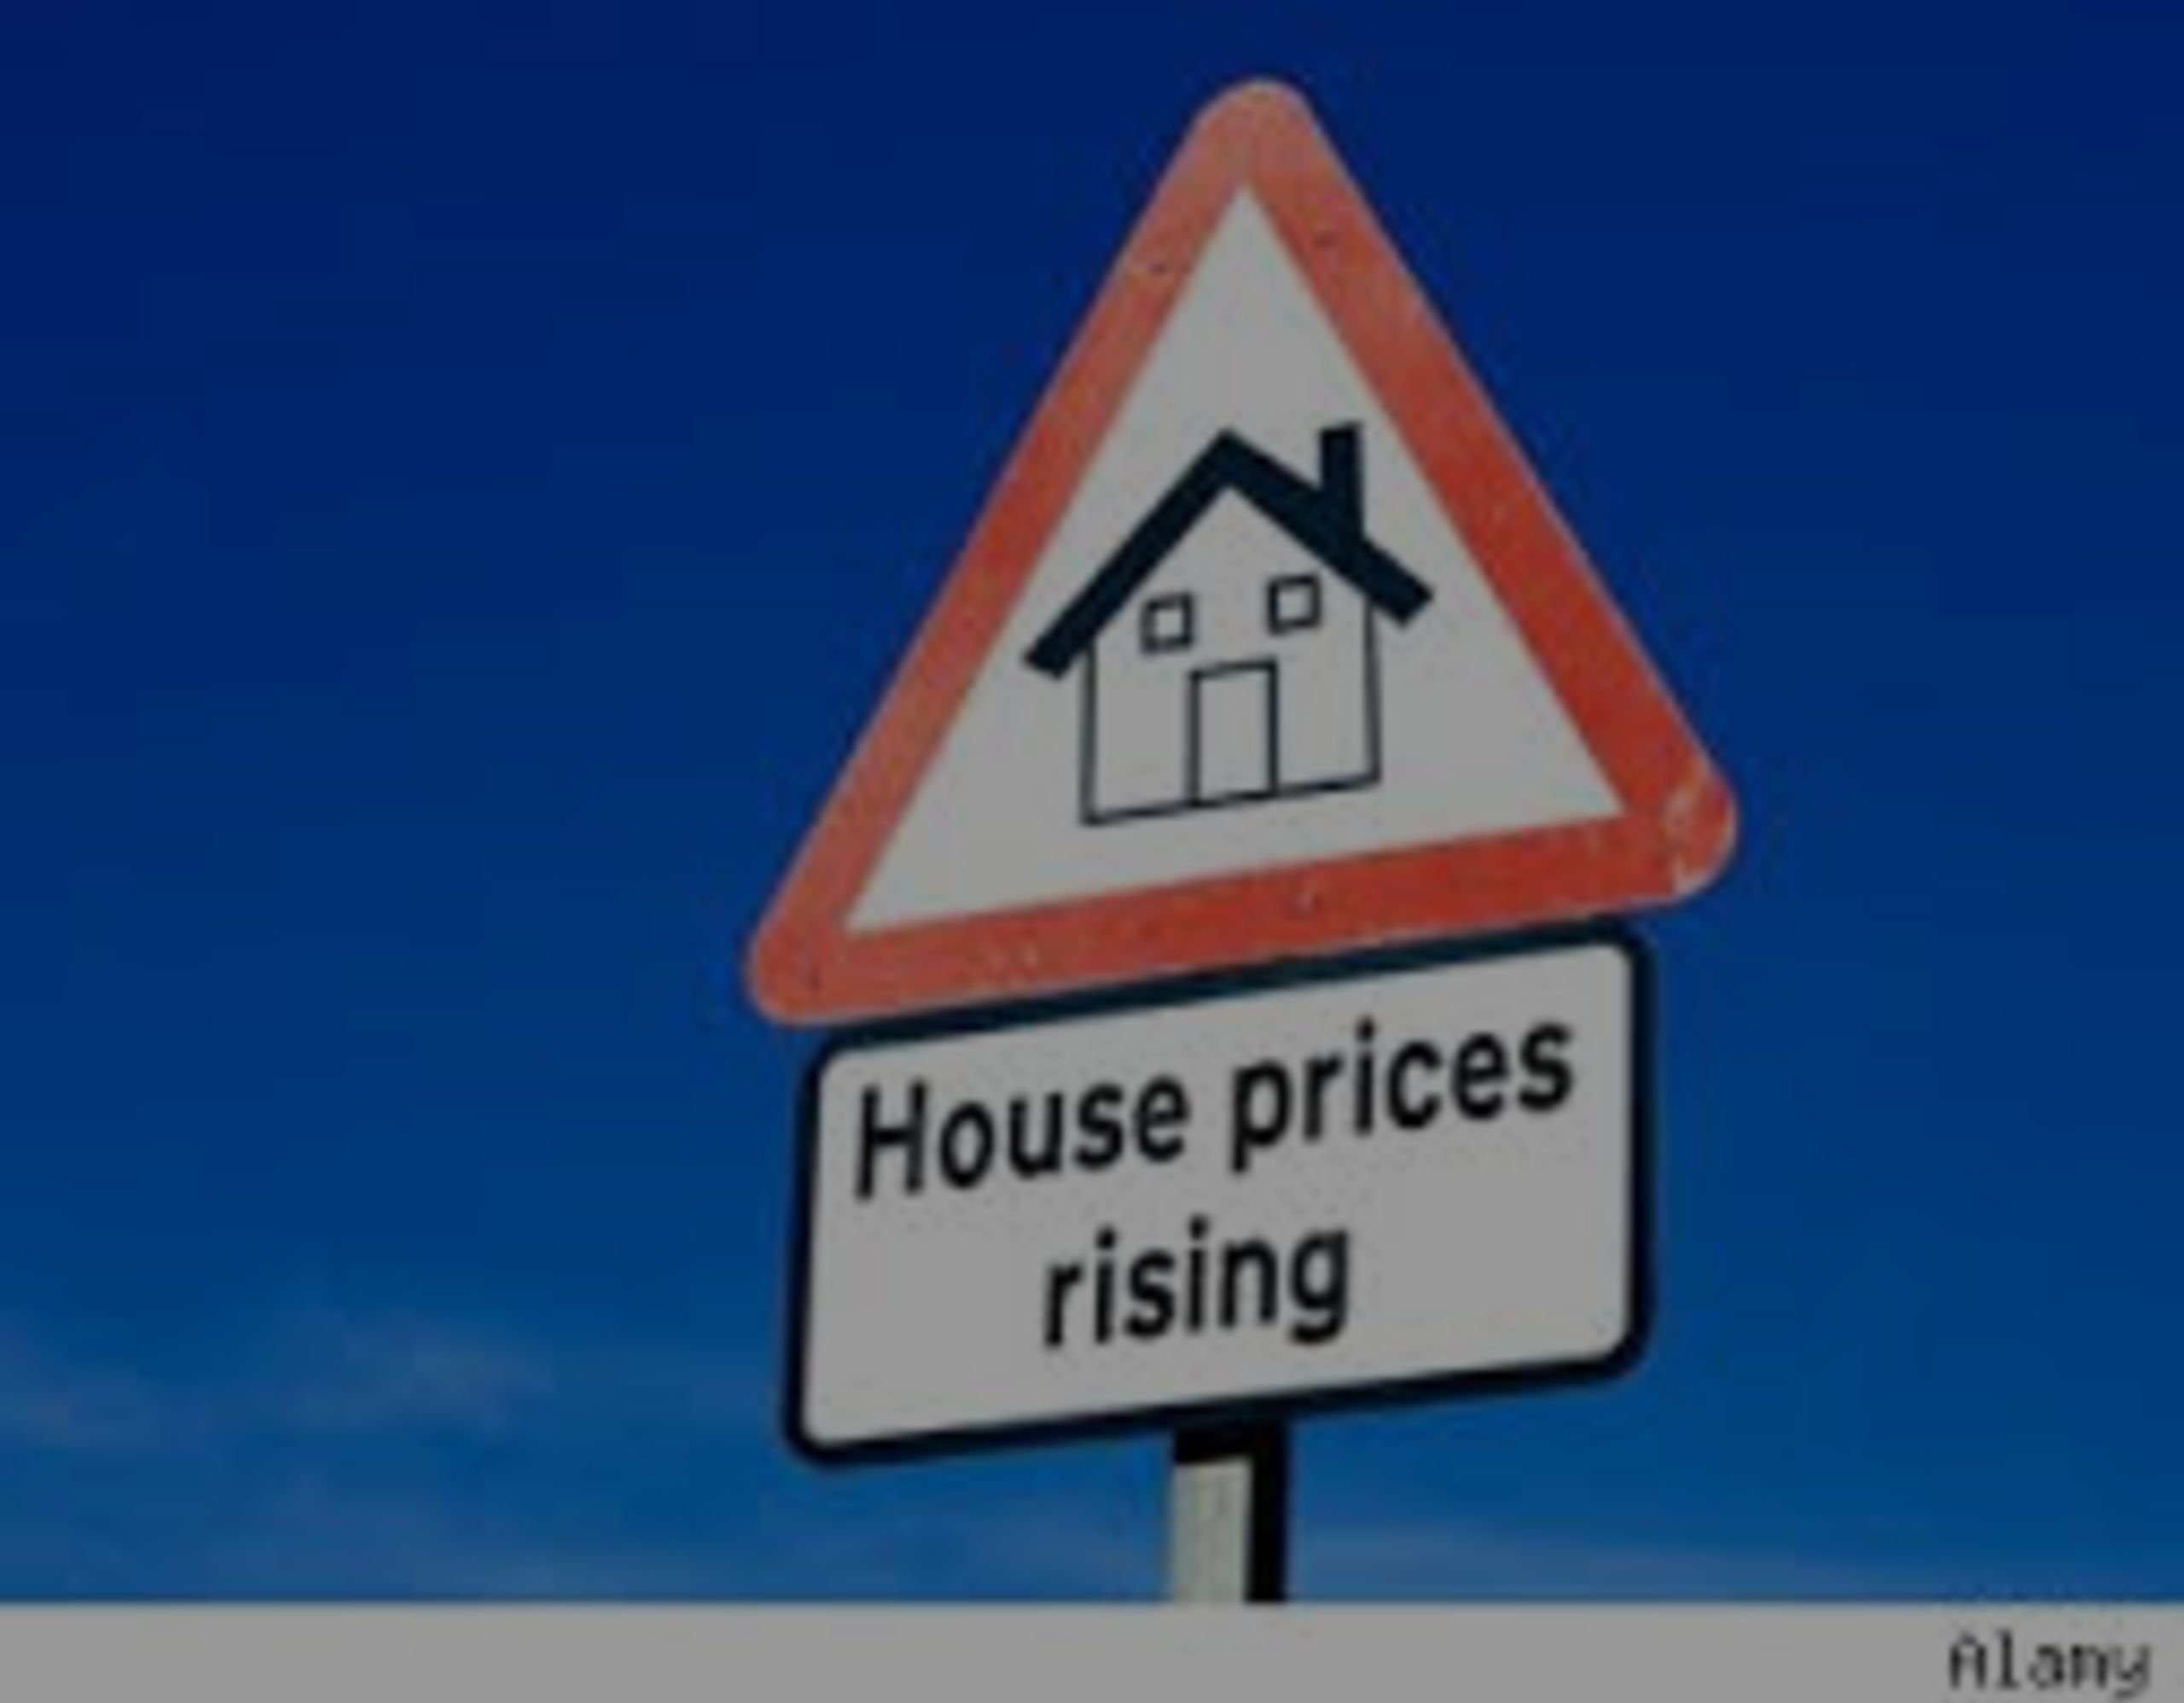 NAR: U.S. home prices rose 5.3% in 4Q 2017